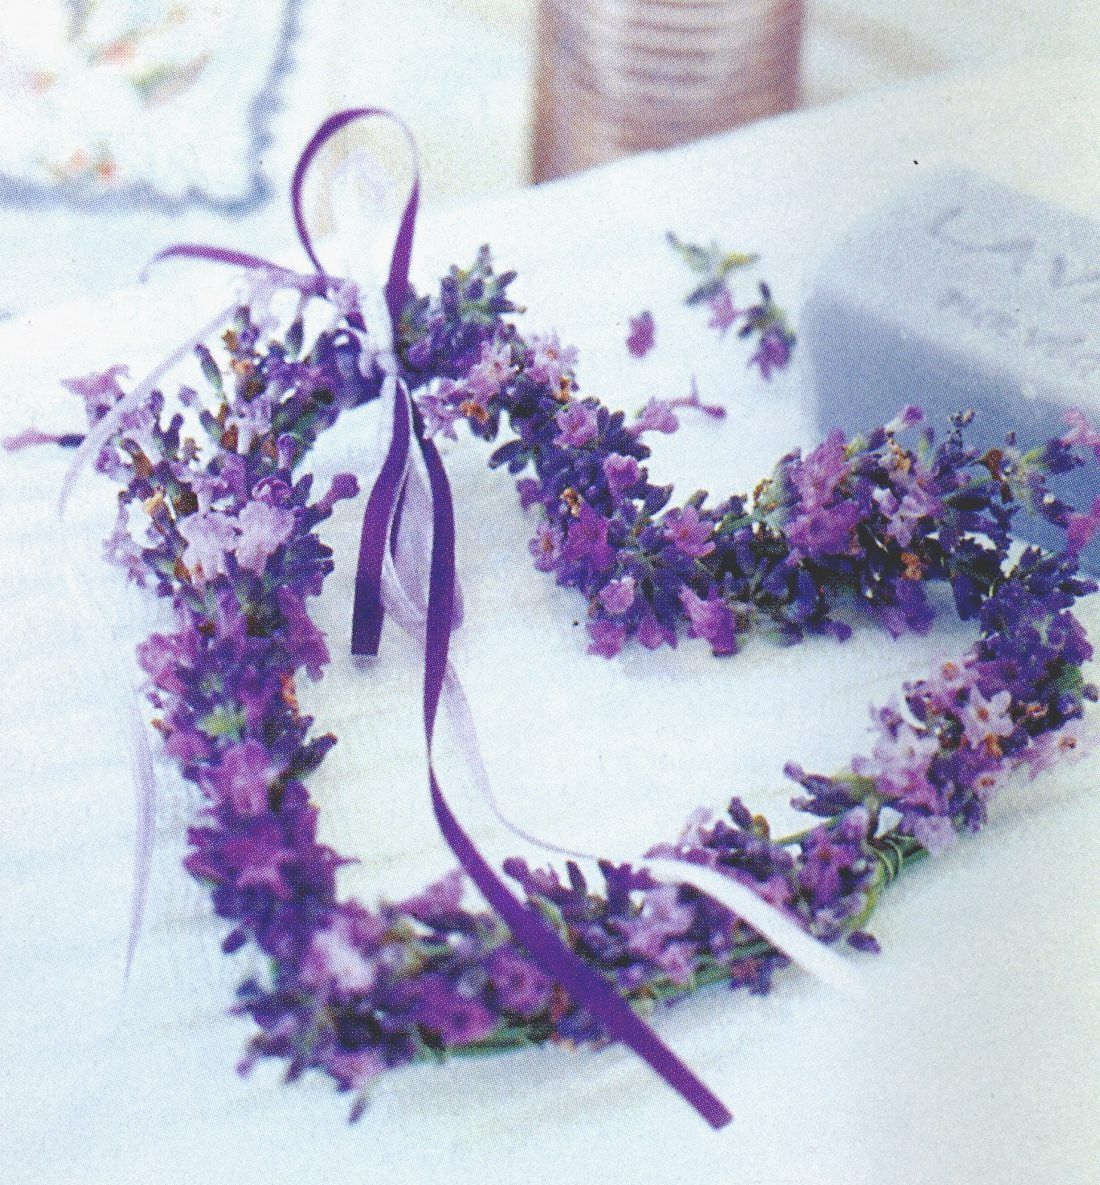 check out more ideas with lavander......